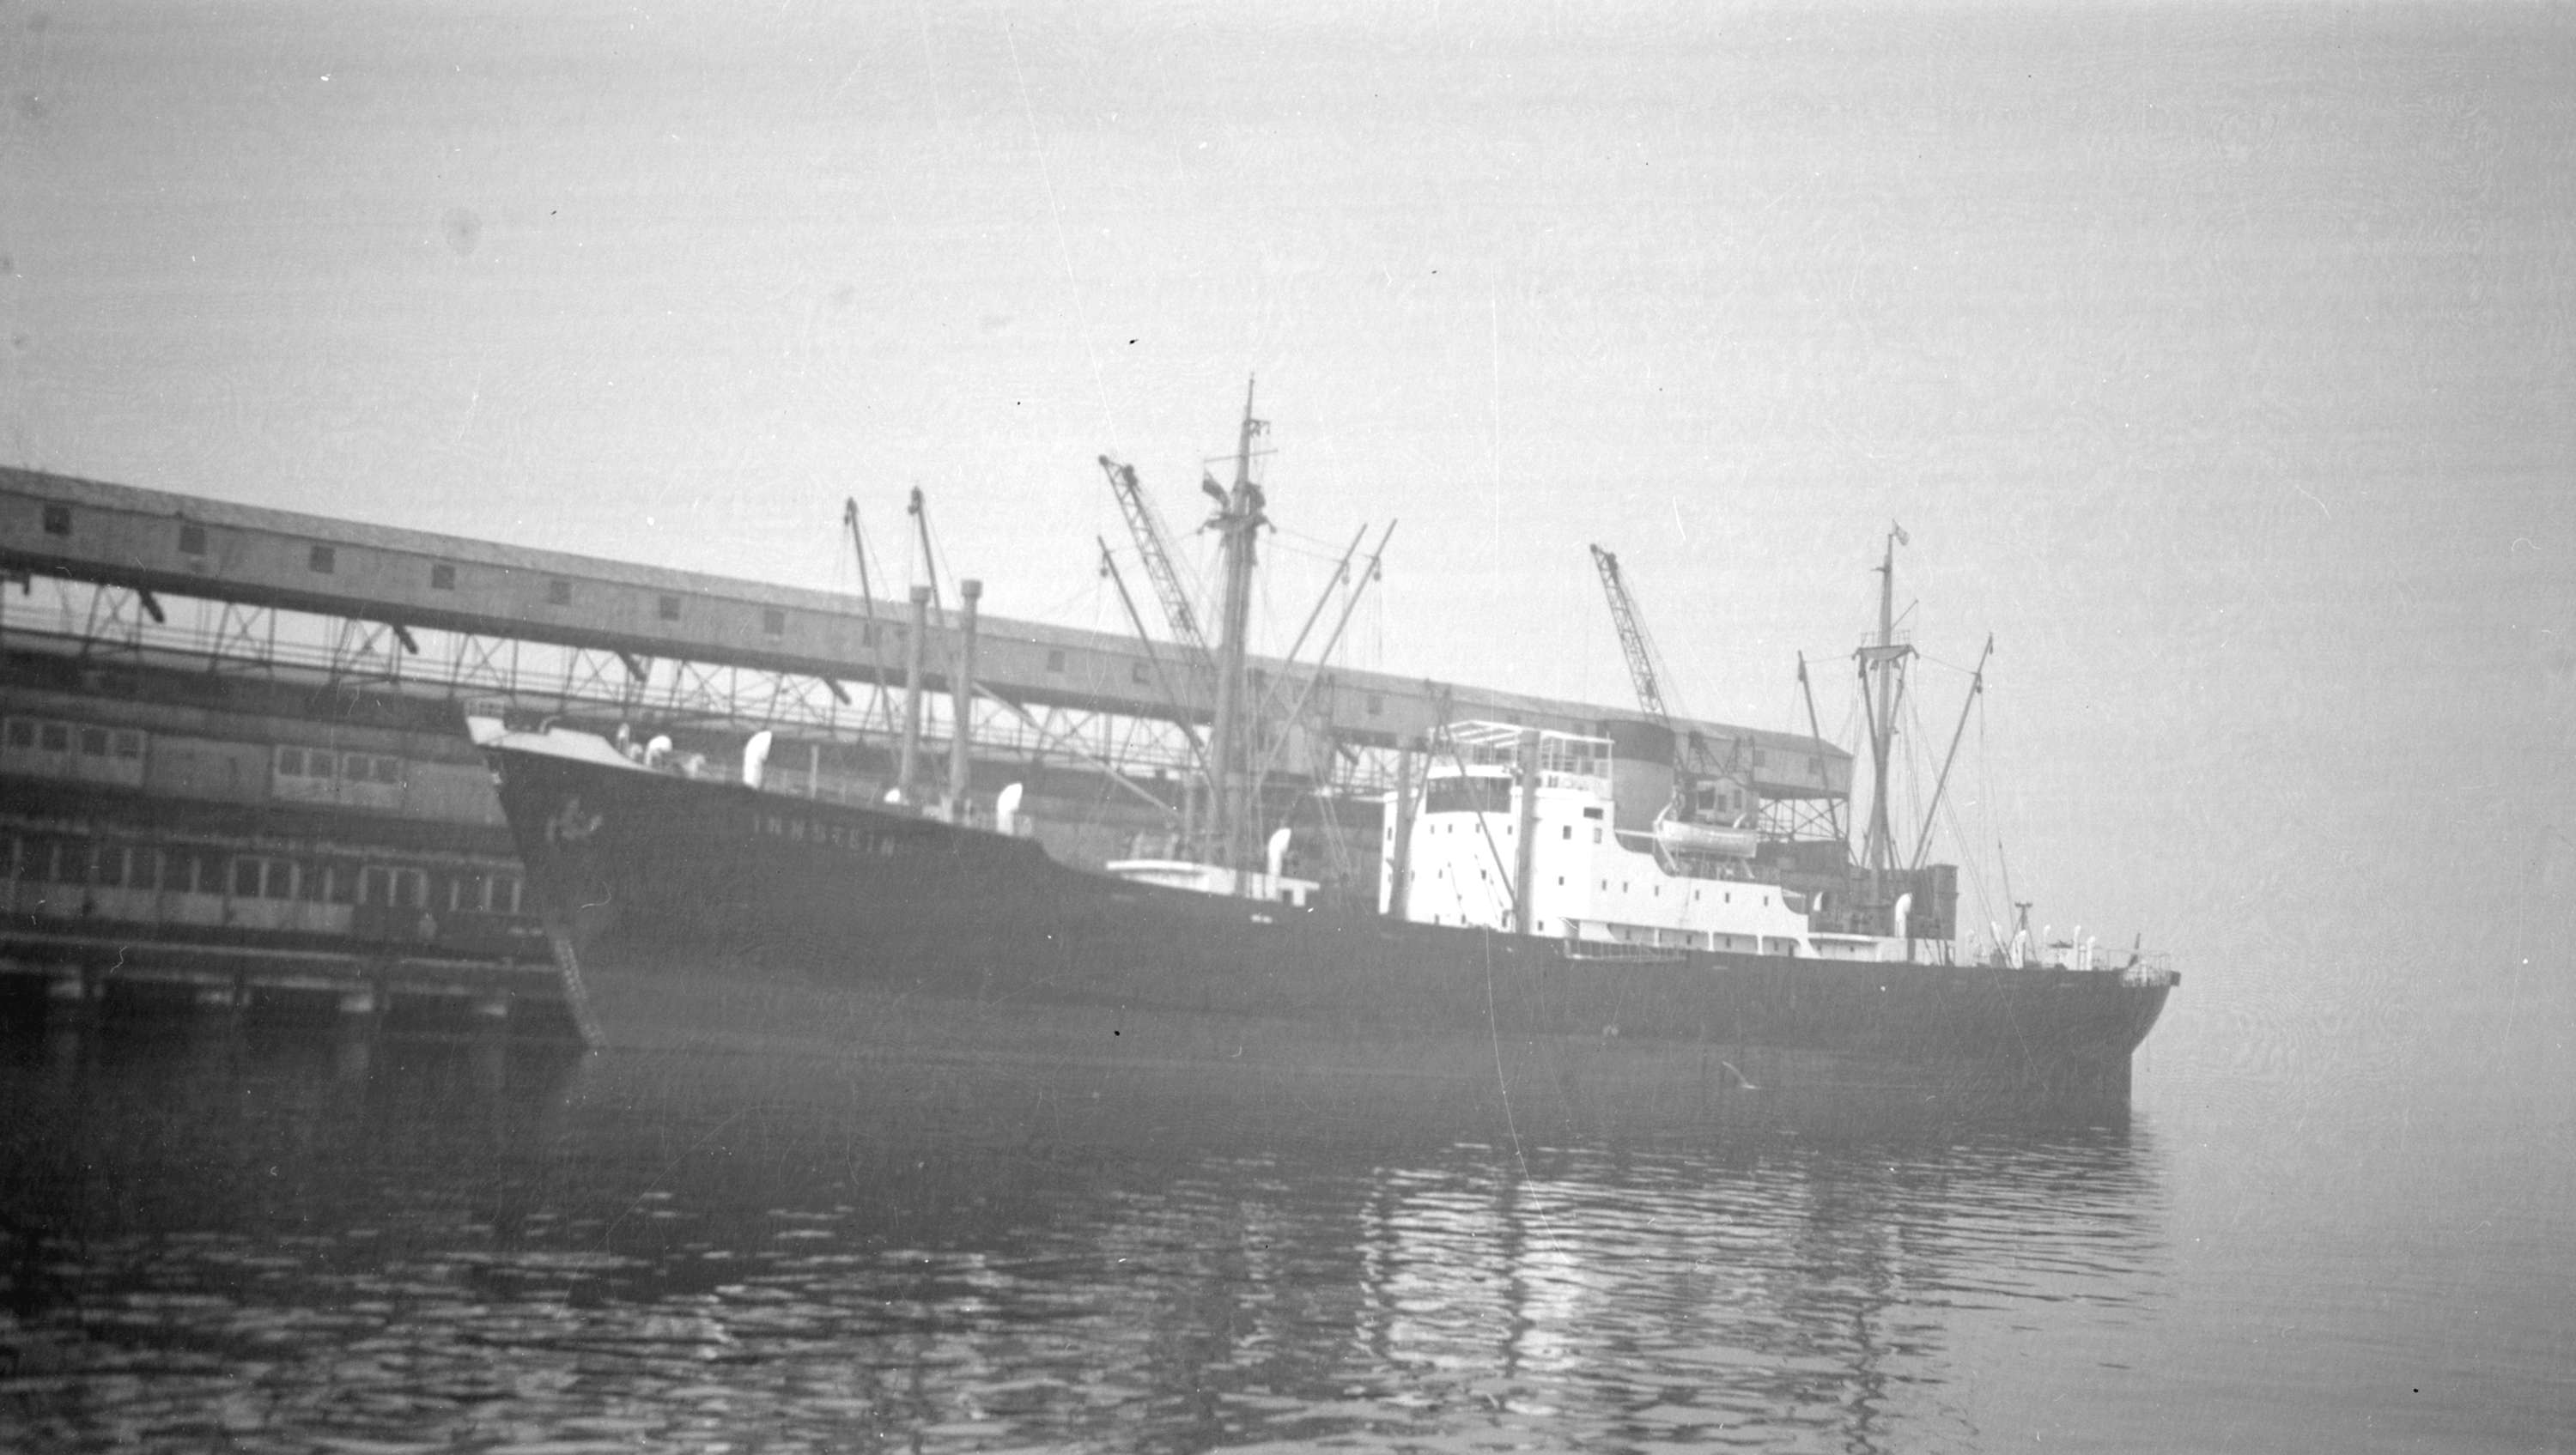 S.S. Innstein [at dock] - City of Vancouver Archives